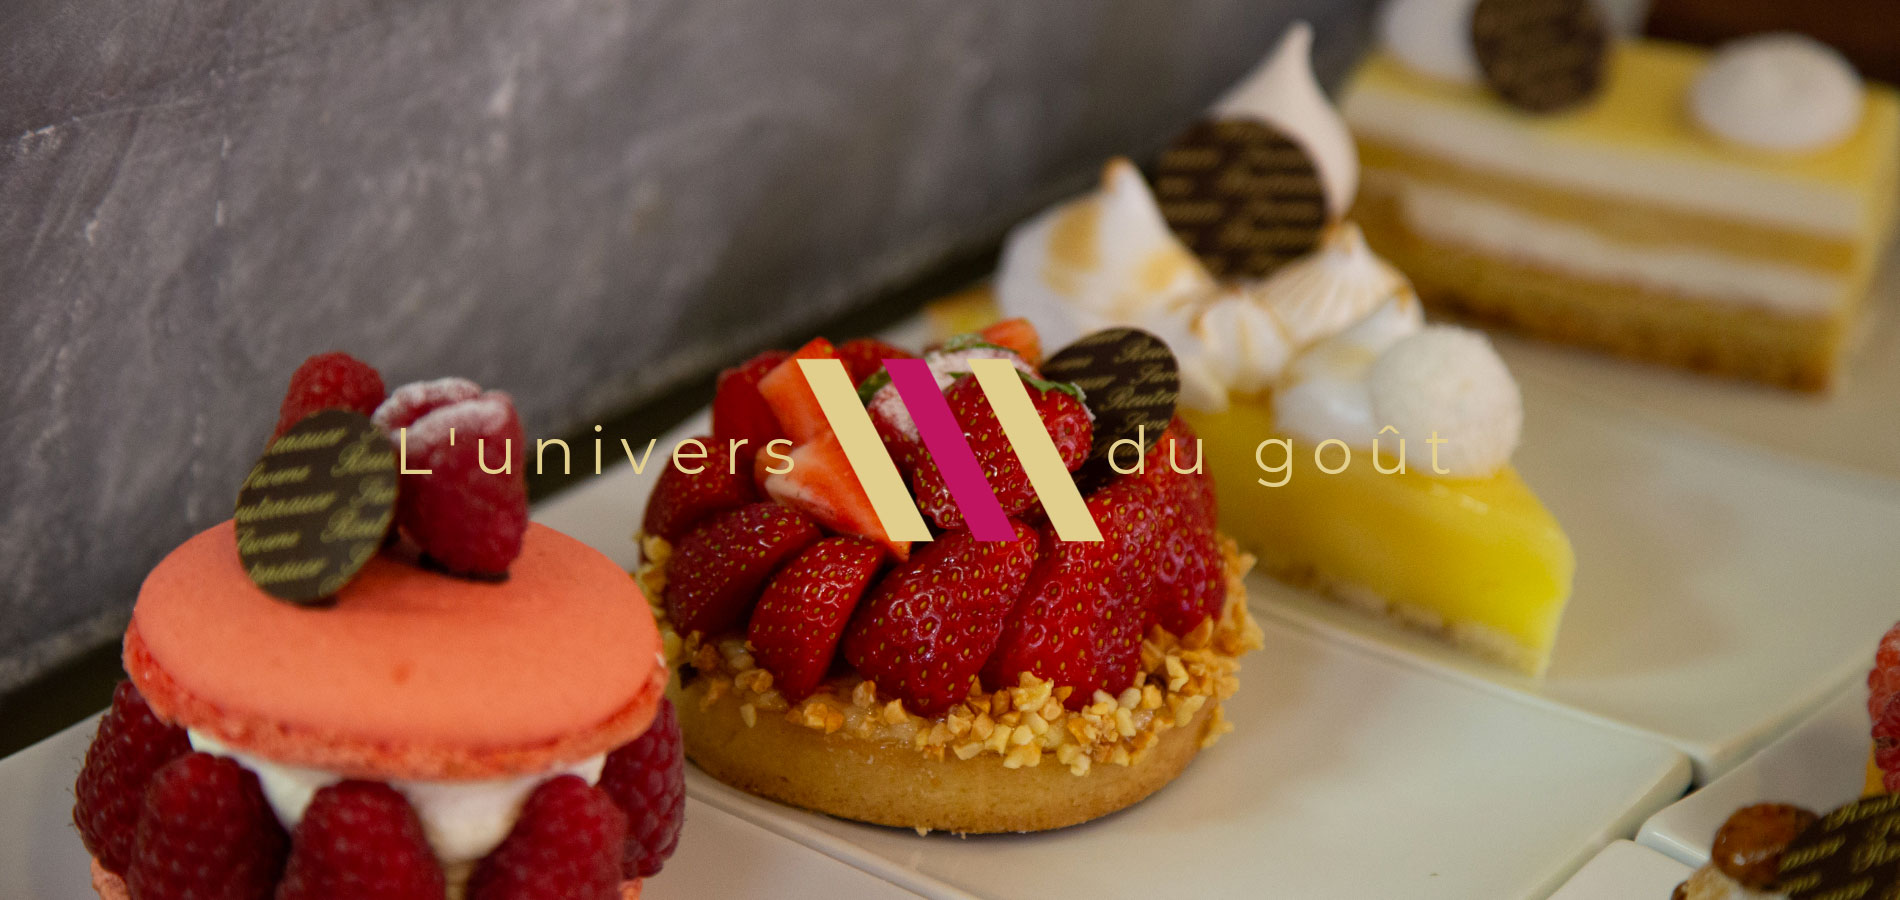 patisseries REUTENAUER Saverne